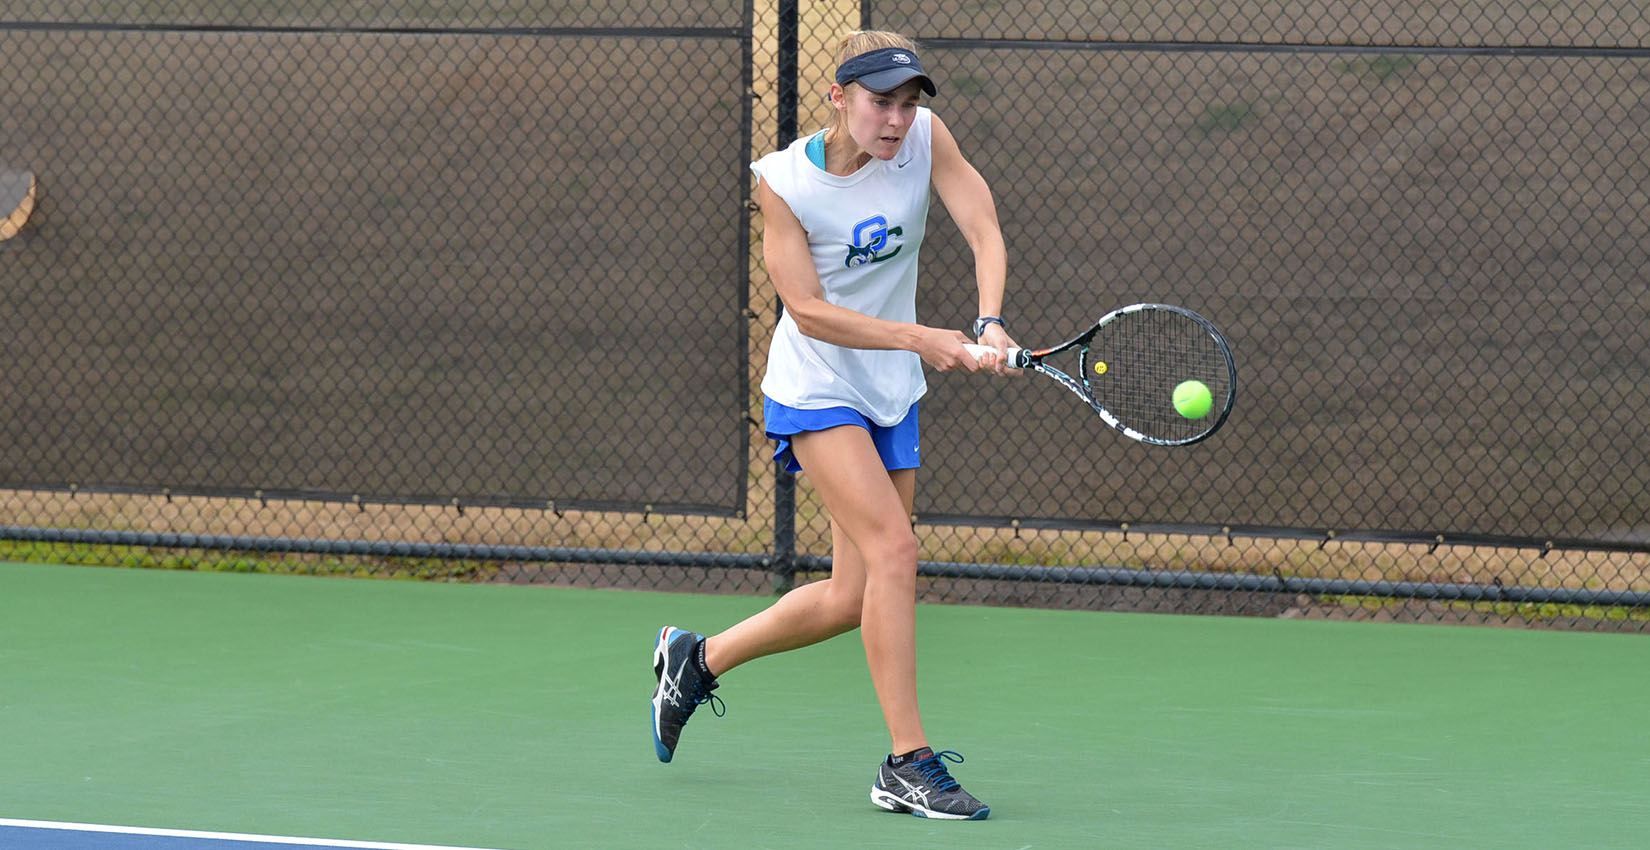 Jena Kelly got a big win for the Bobcats in both singles and doubles Sunday.